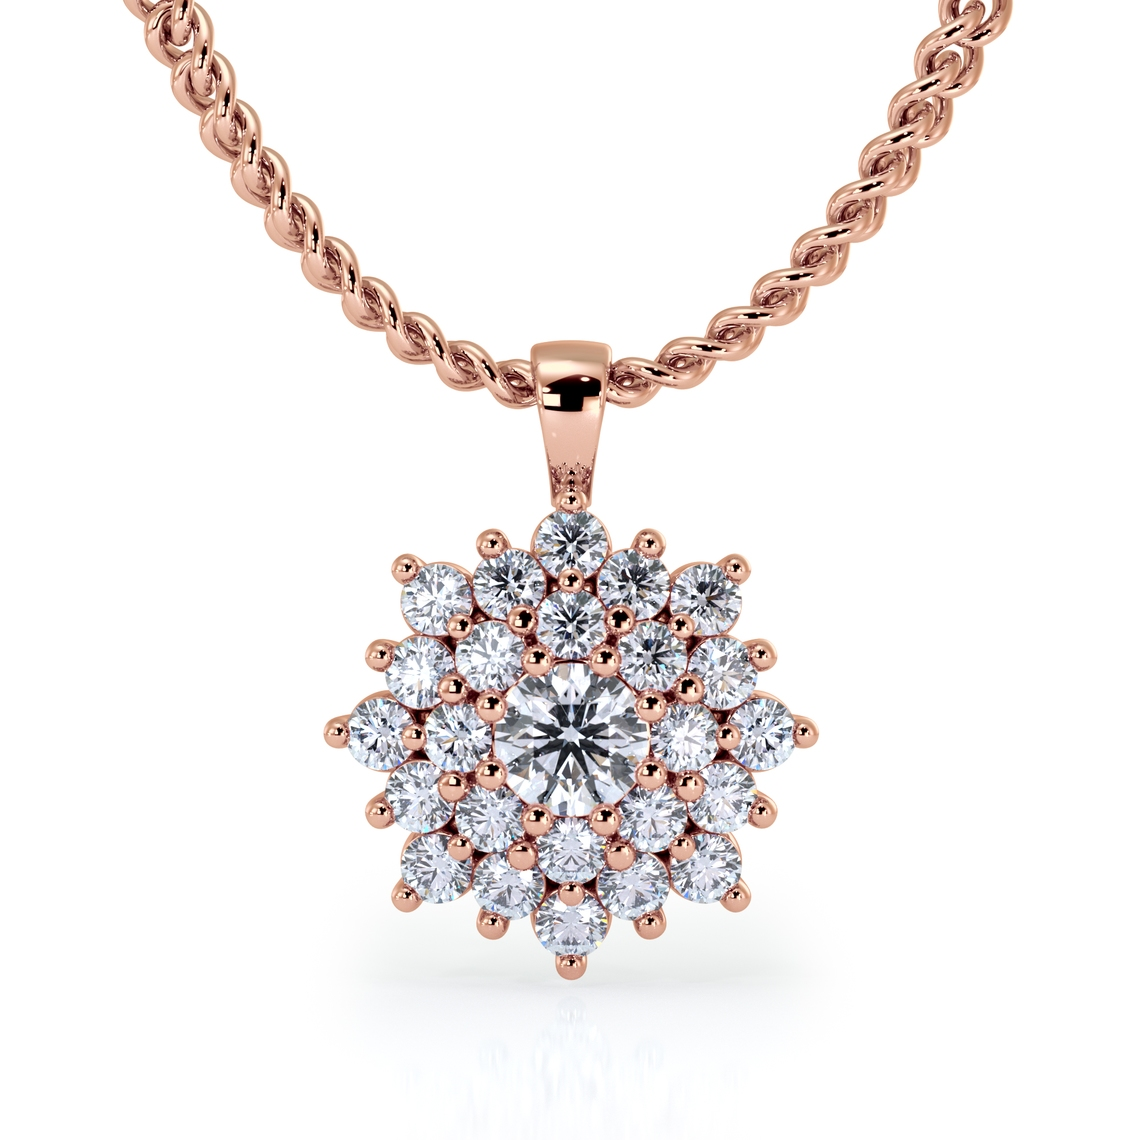 Rose Gold, Pendant, Diamonds, Chain